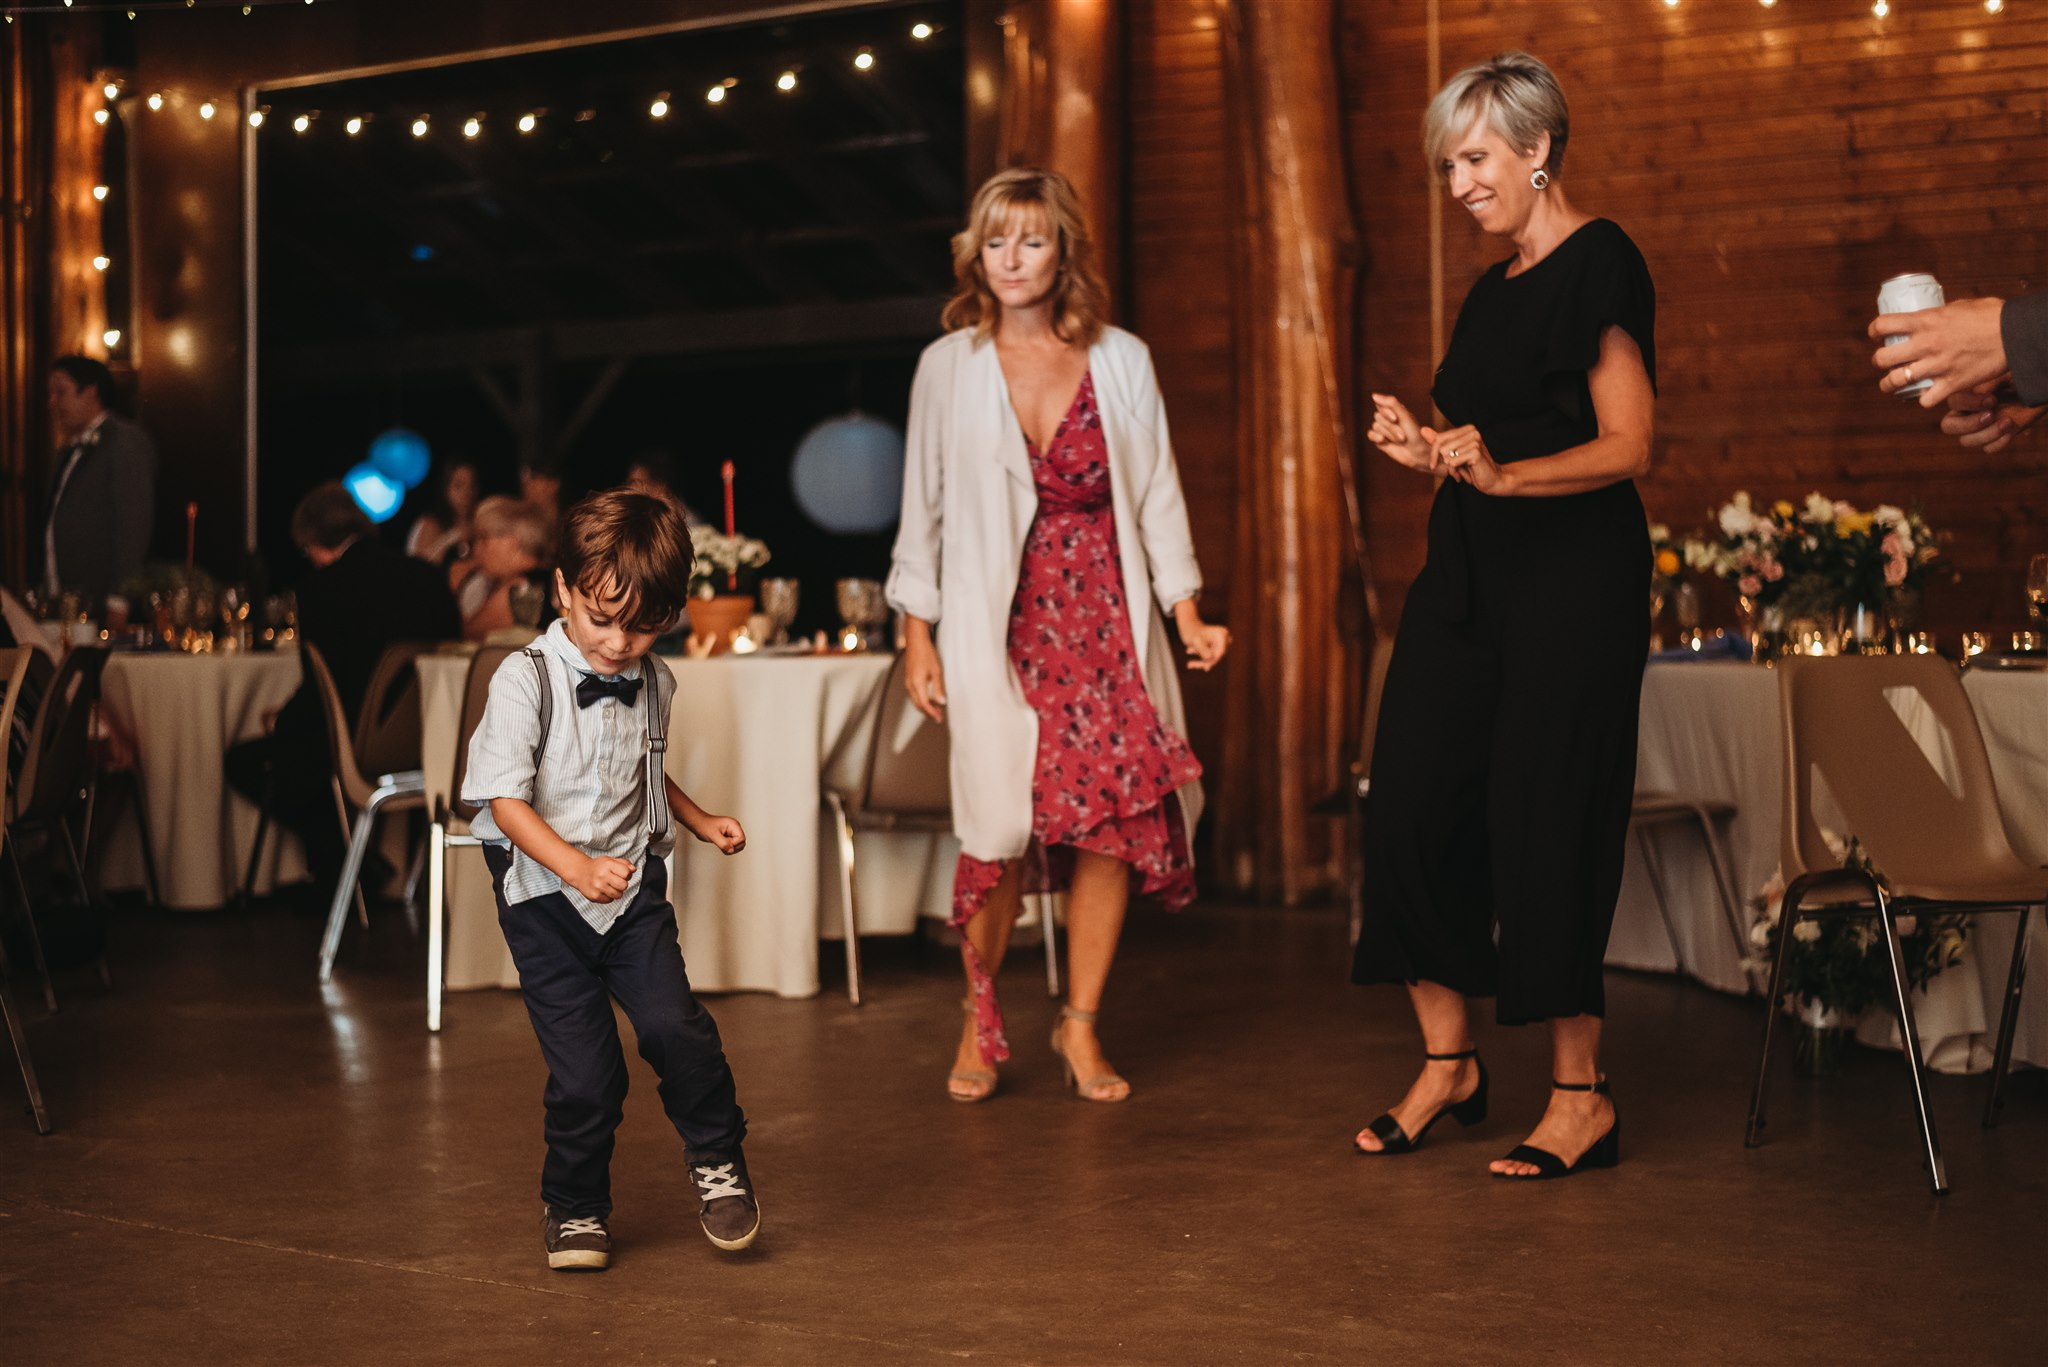 dancing during wedding reception at the watson porter pavillion in the fanshawe conservation area